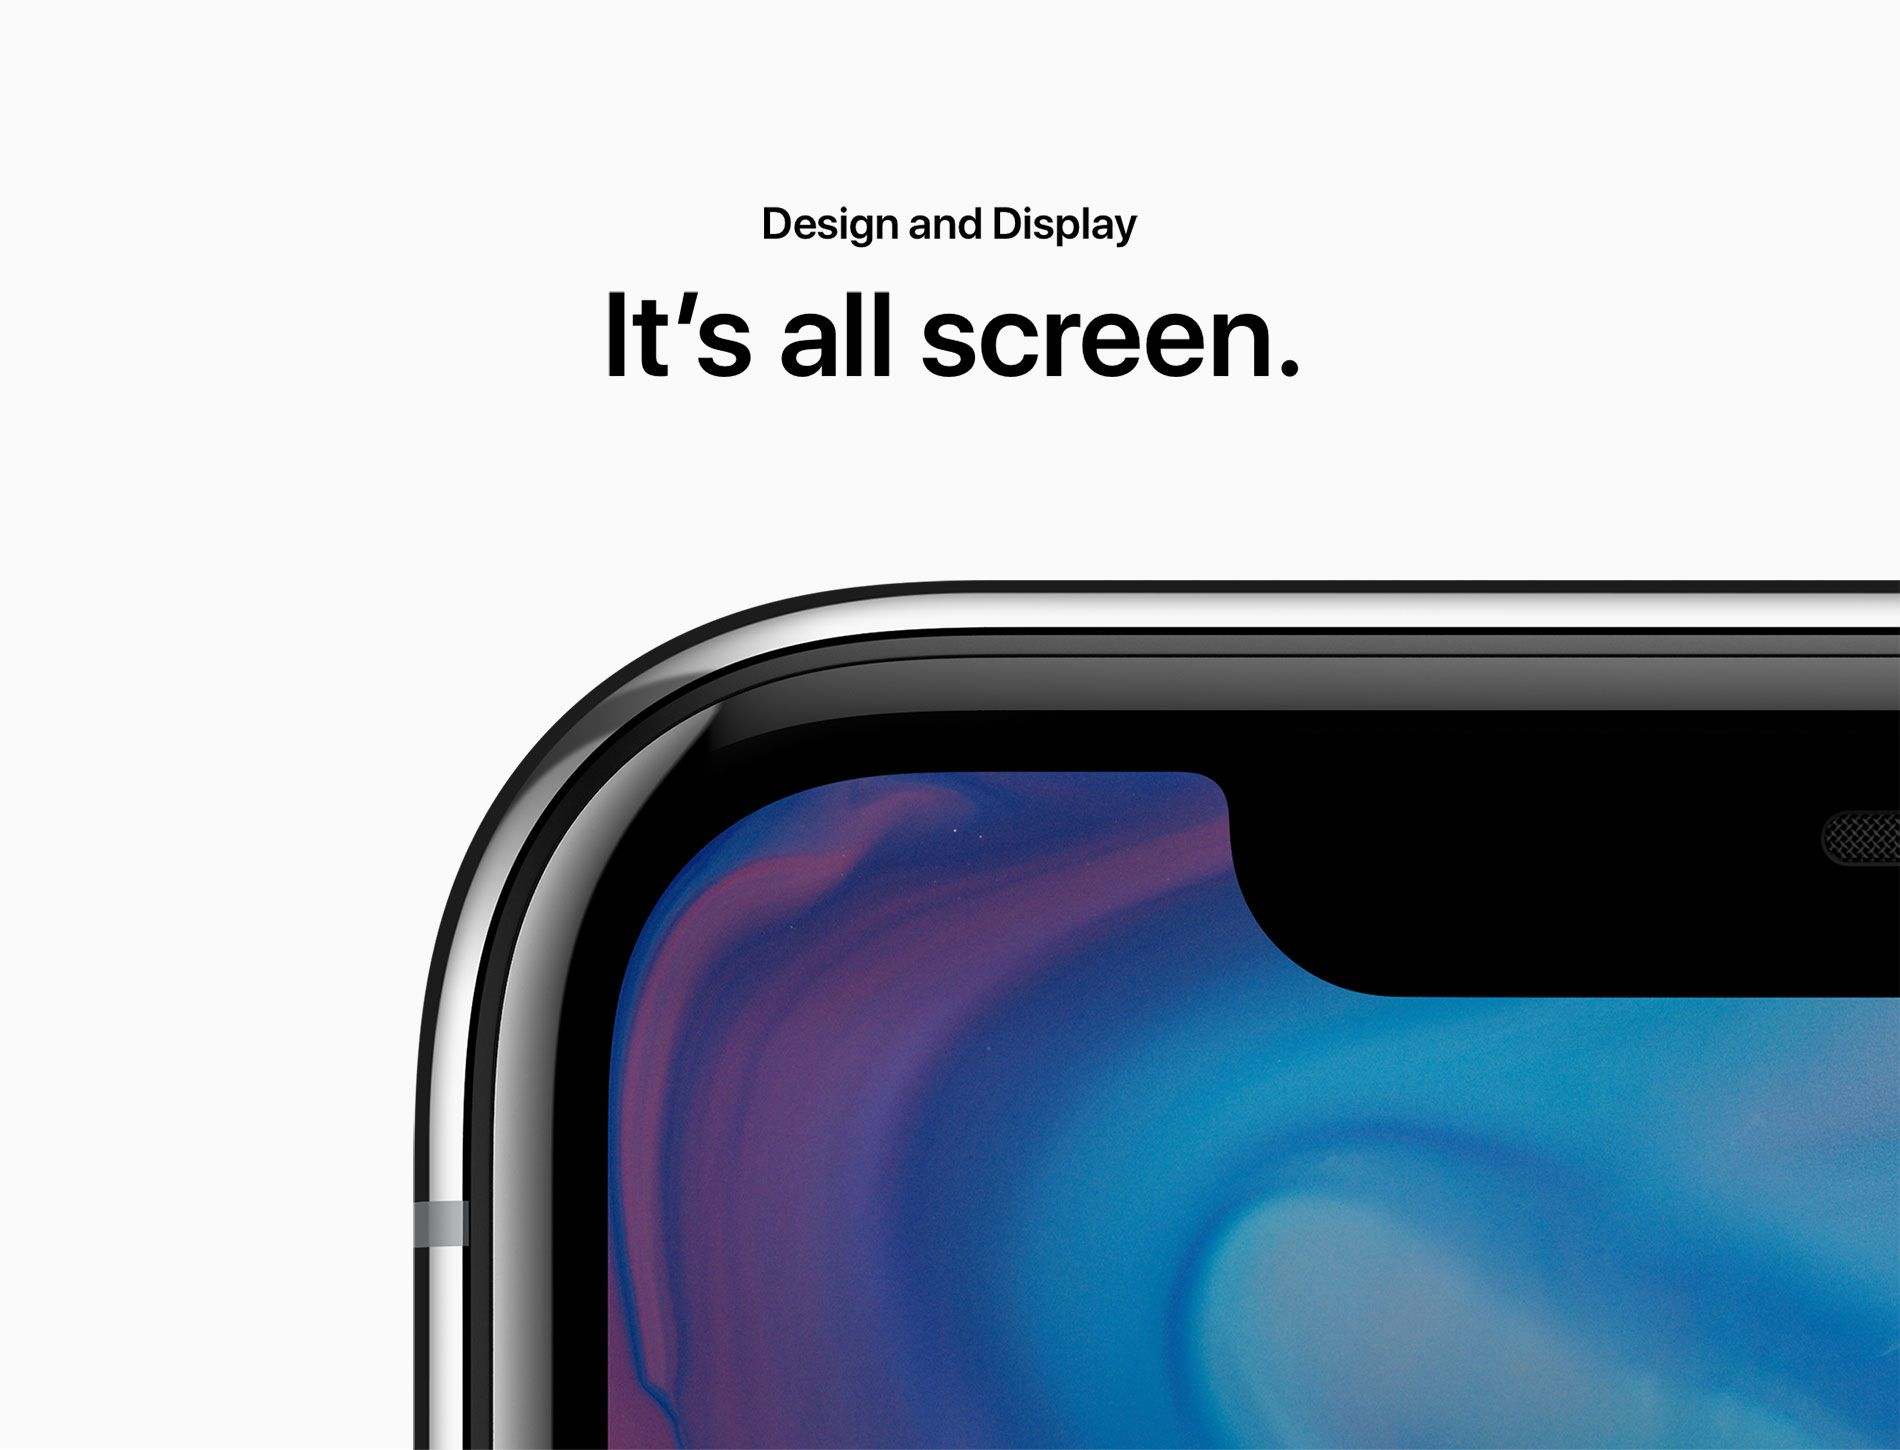 Design and Display - It's all screen.